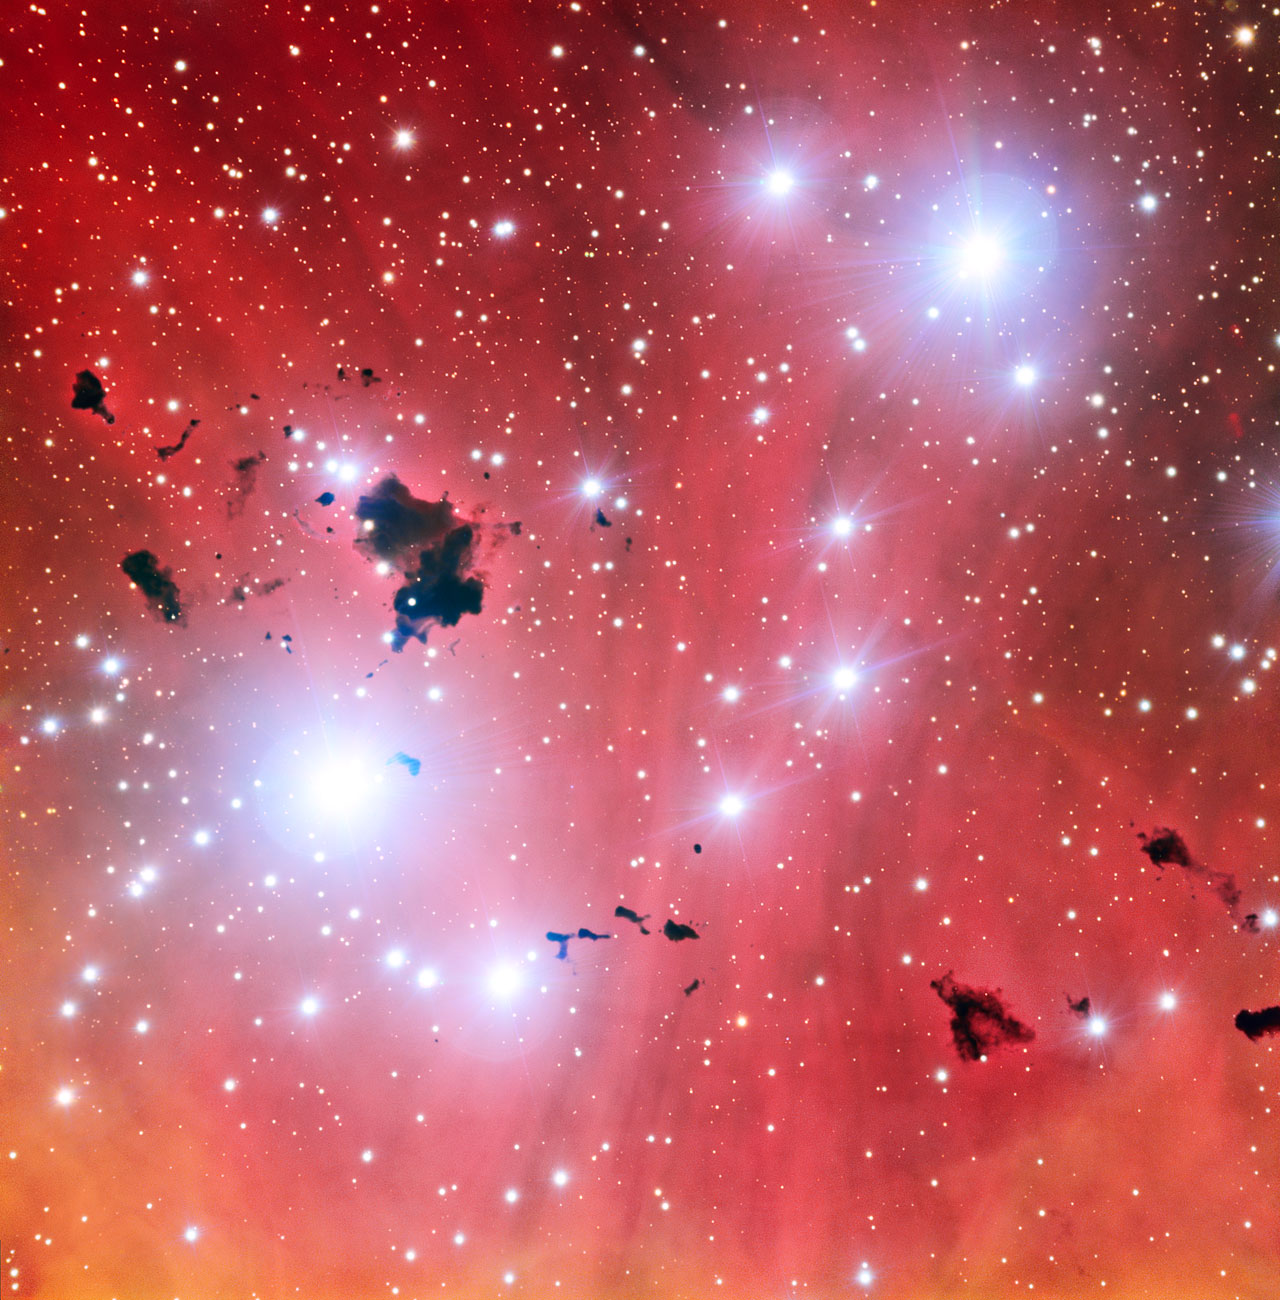 ESO's Very Large Telescope celebrates 15 years of success ...